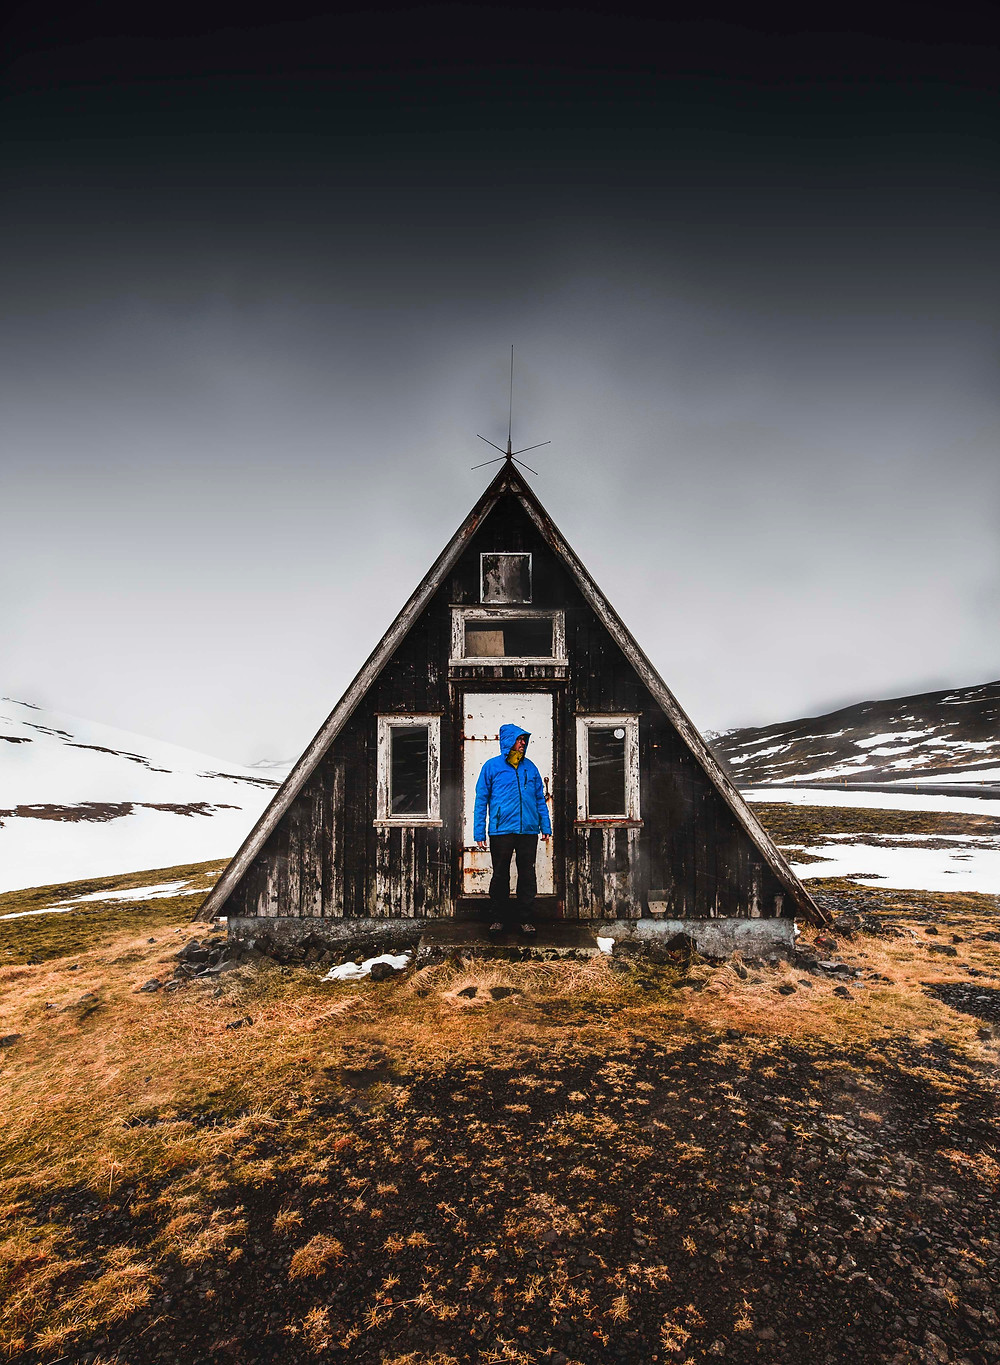 Matt McGee is an Icelandic landscape photographer